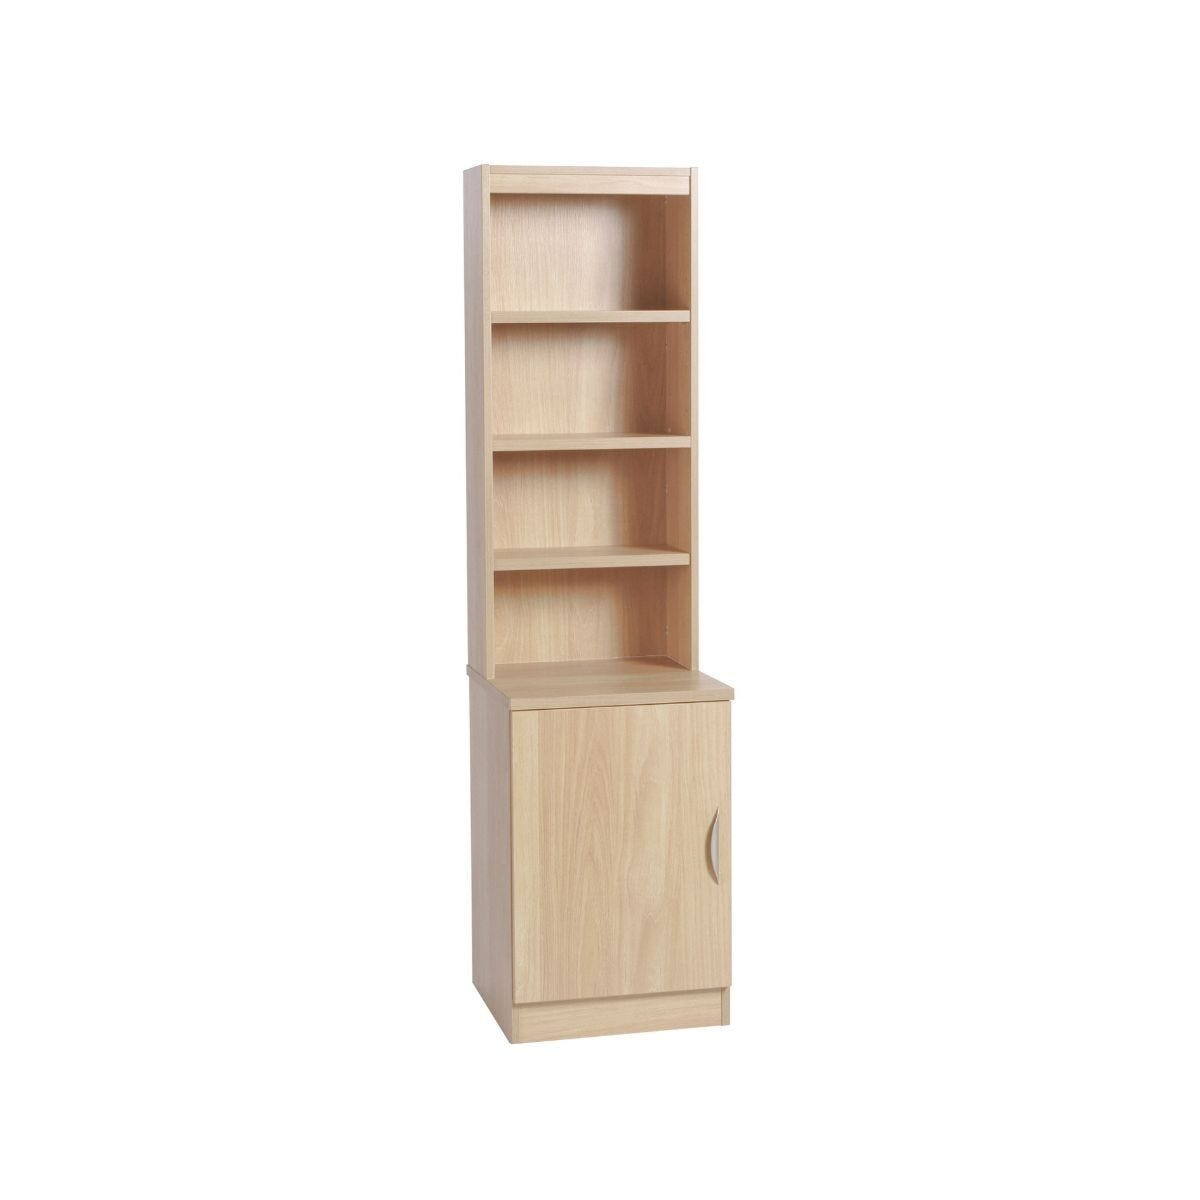 R White Desk Height Wide Cupboard 48cm with Overshelving